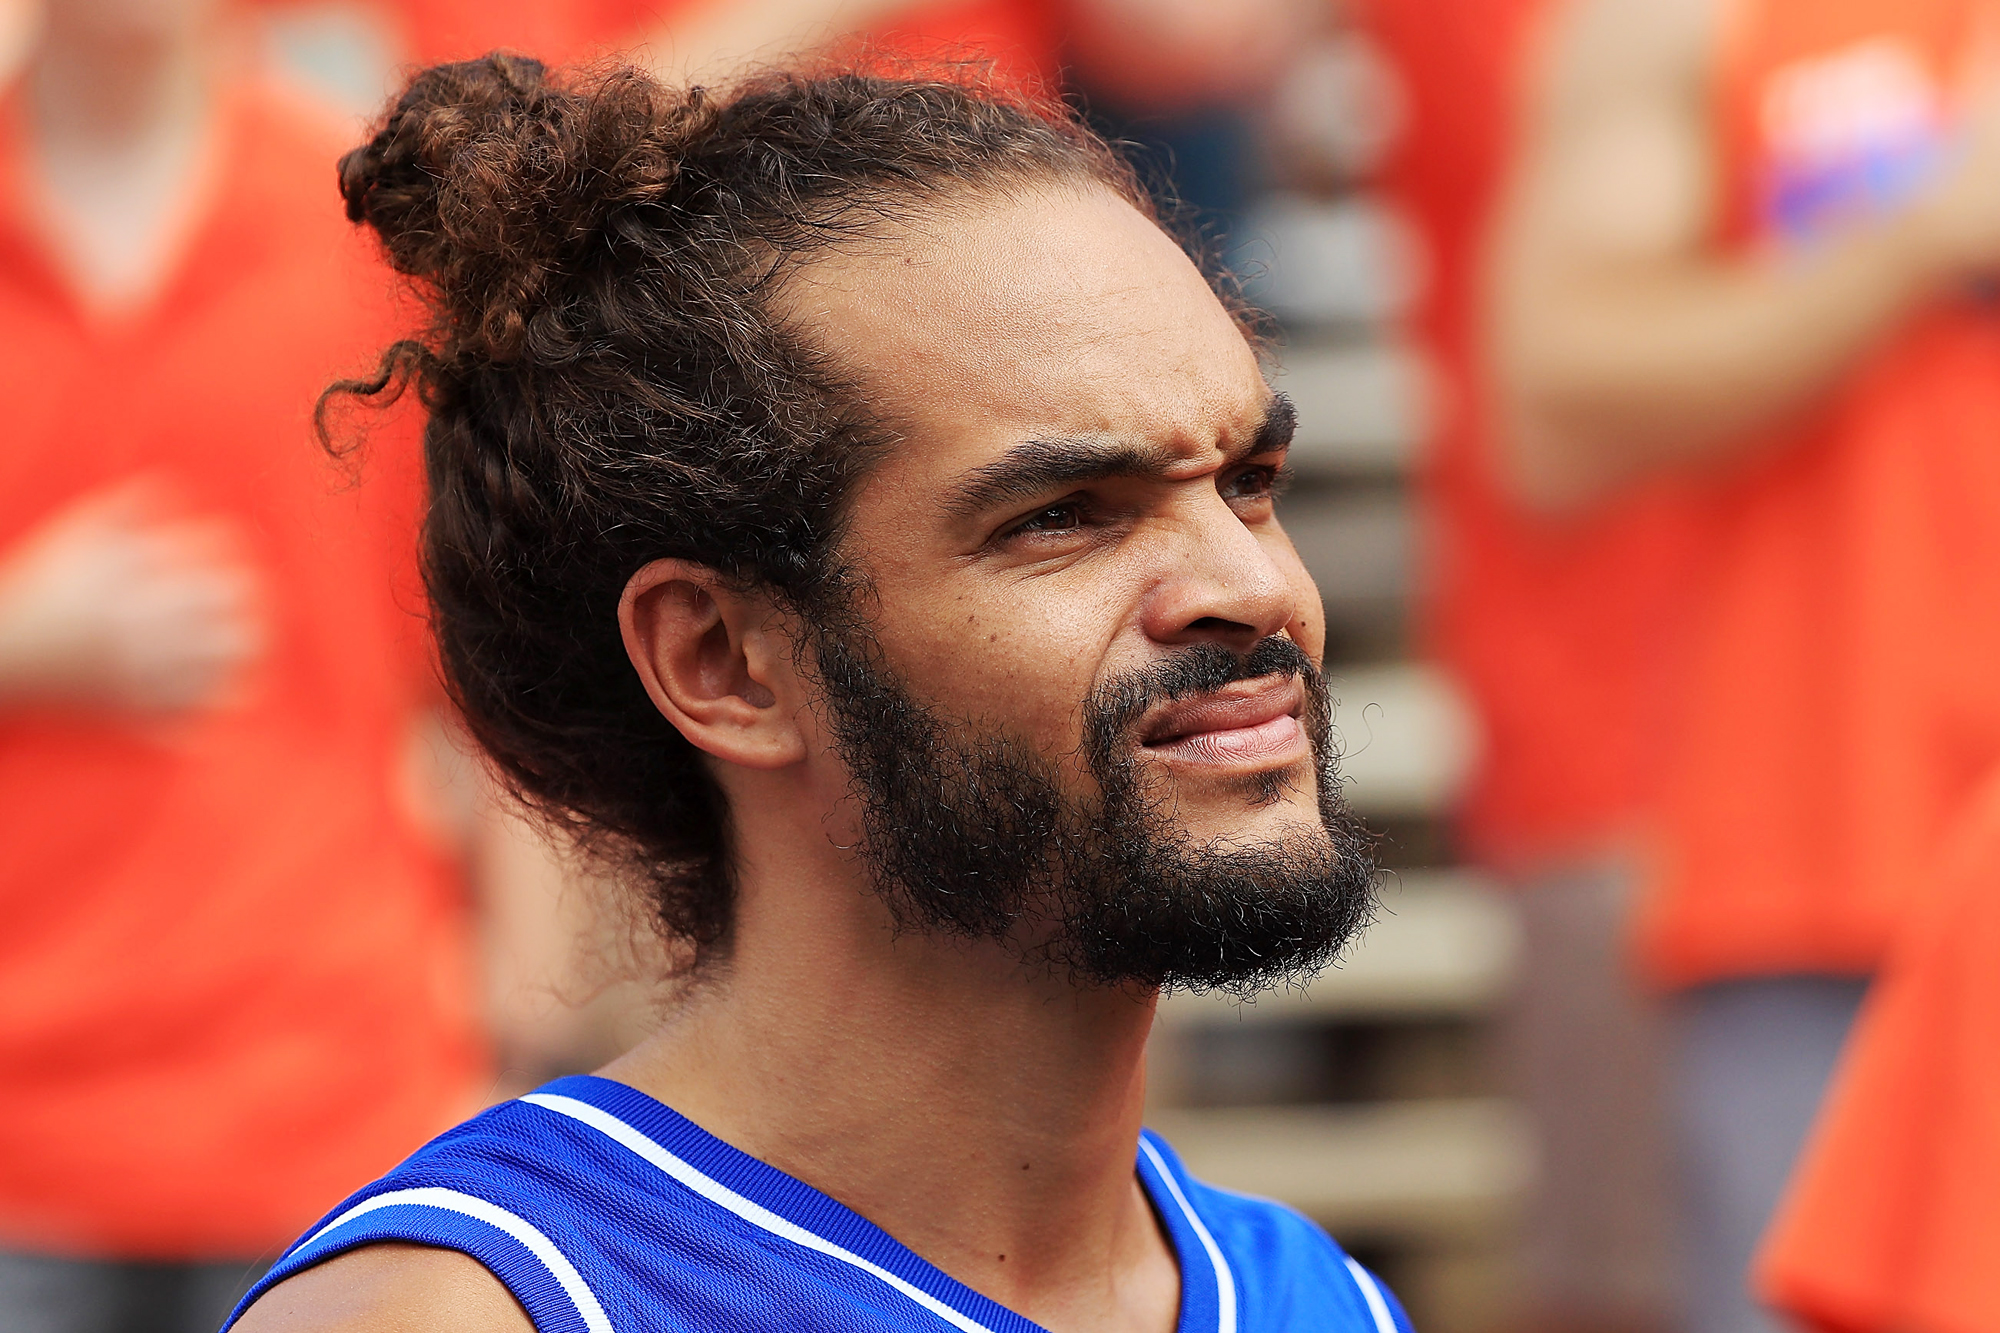 NBA player Joakim Noah looks on during a game between the Florida Gators and the Kentucky Wildcats at Ben Hill Griffin Stadium on September 10, 2016 in Gainesville, Florida.